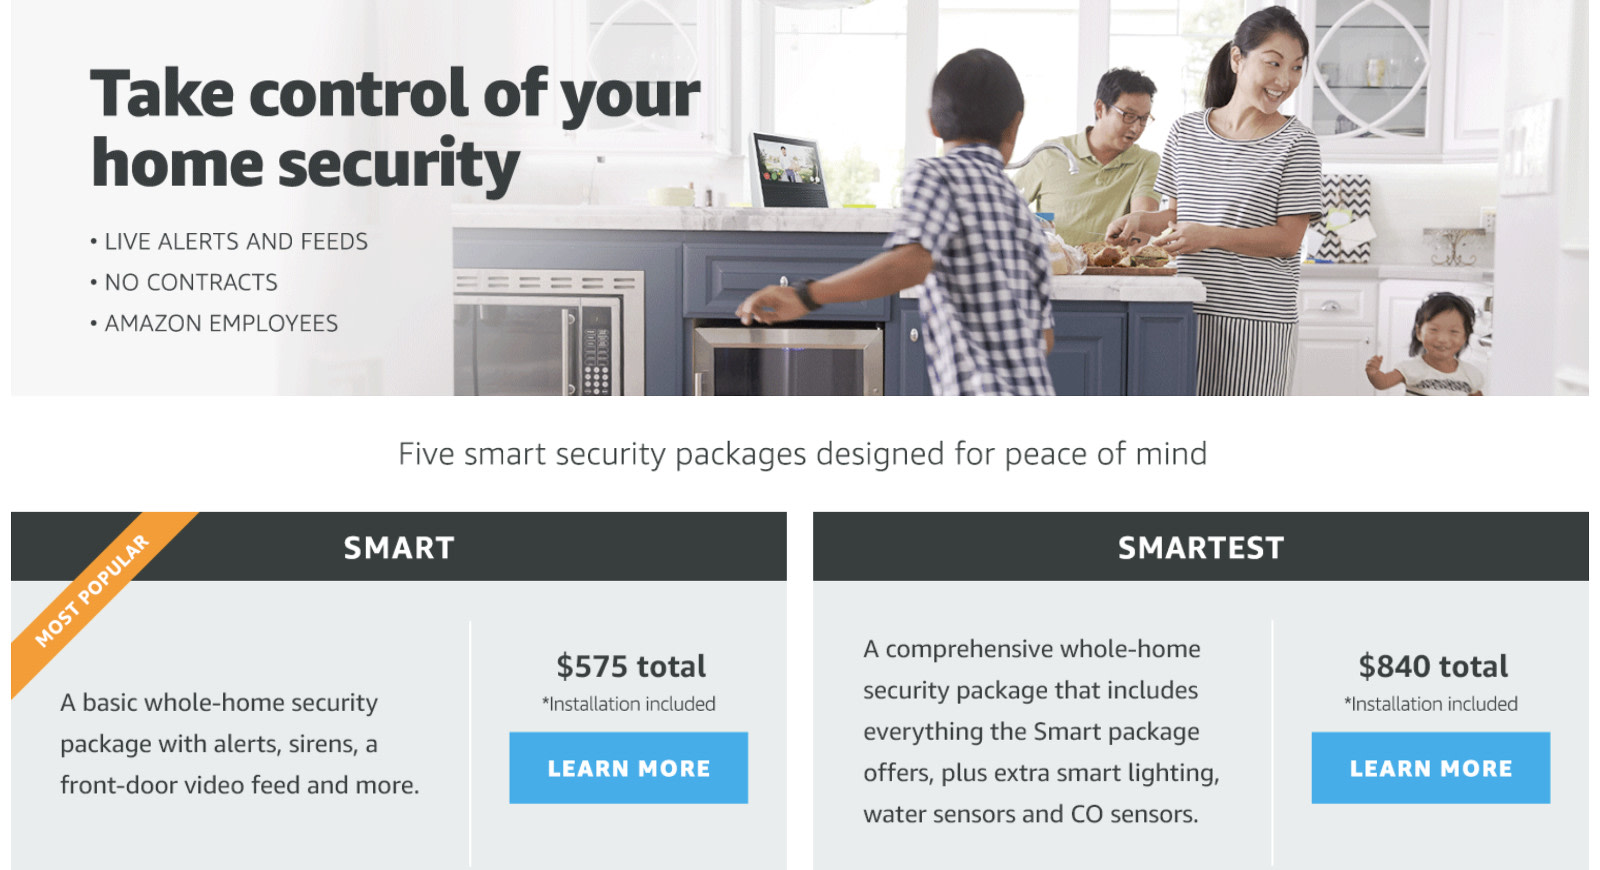 Amazon will install a full smart home security system for you ...